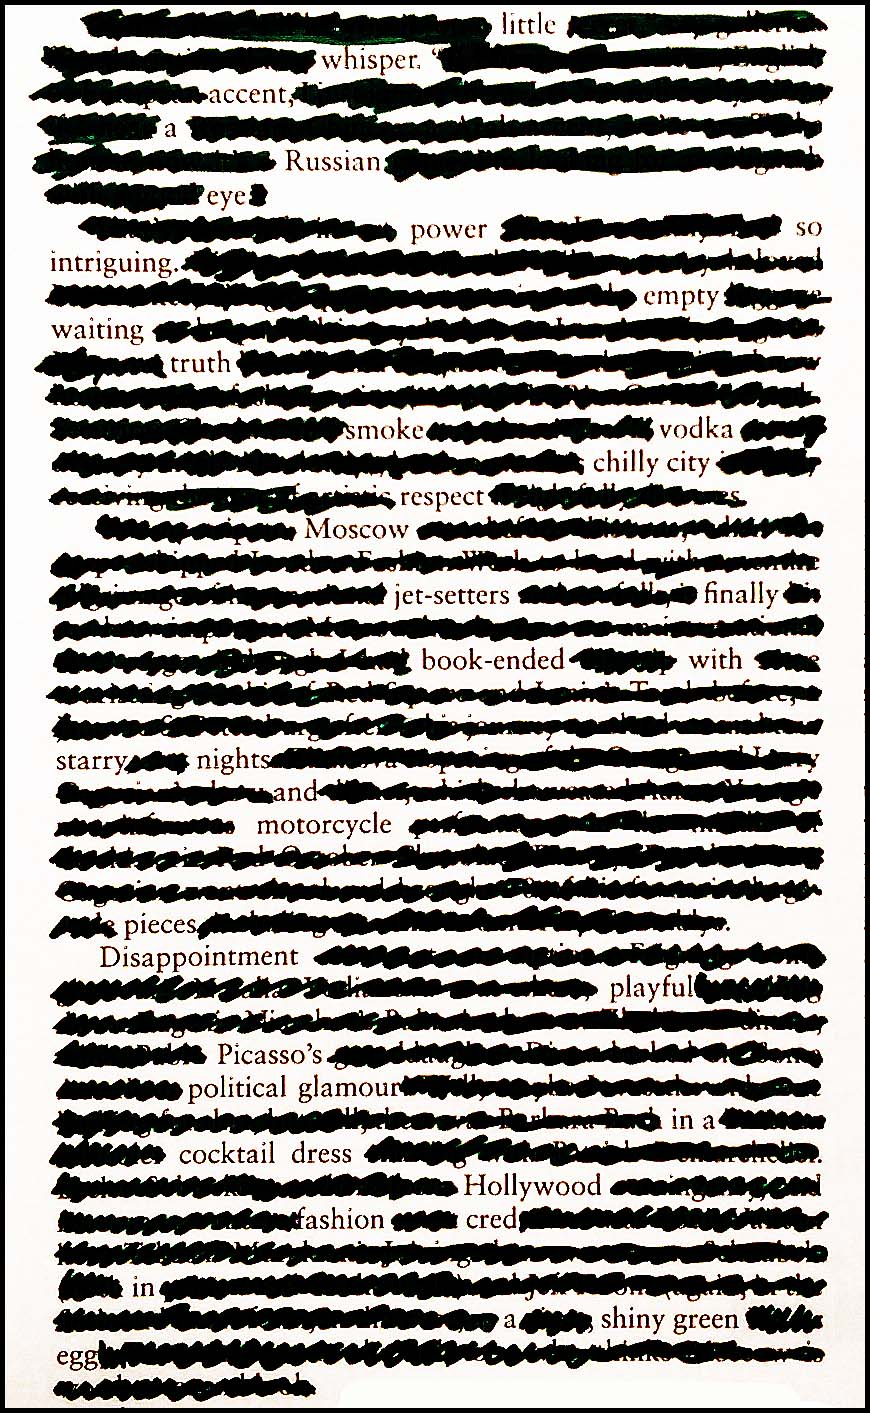 Blackout Poetry: Moscow Jet-setters